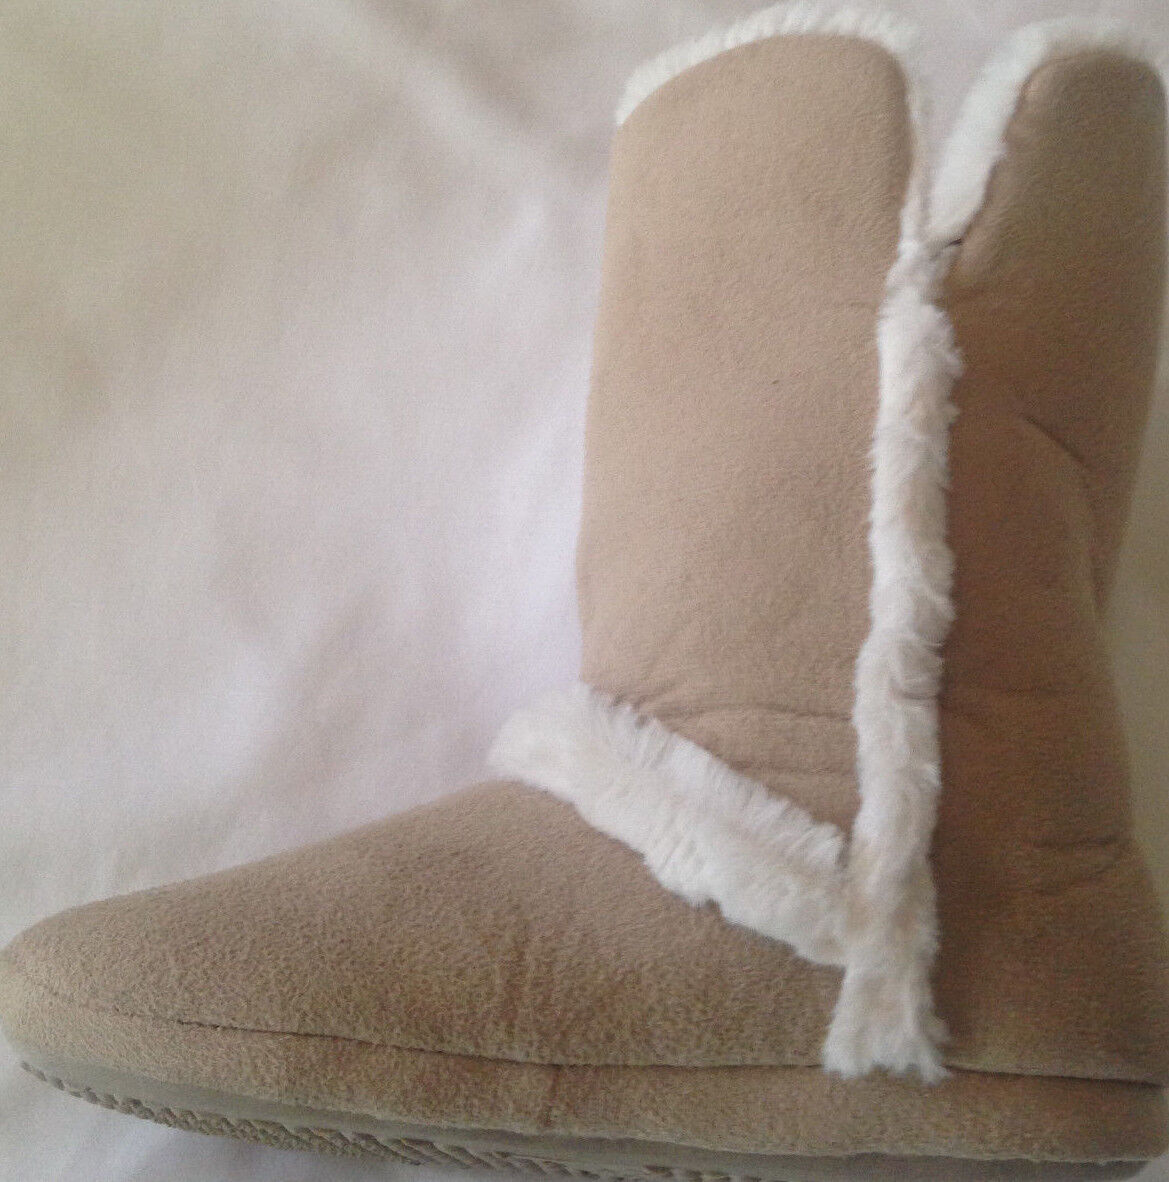 Slippers womens size 5/6M EUR 36-37.5 new tan booties plush lined